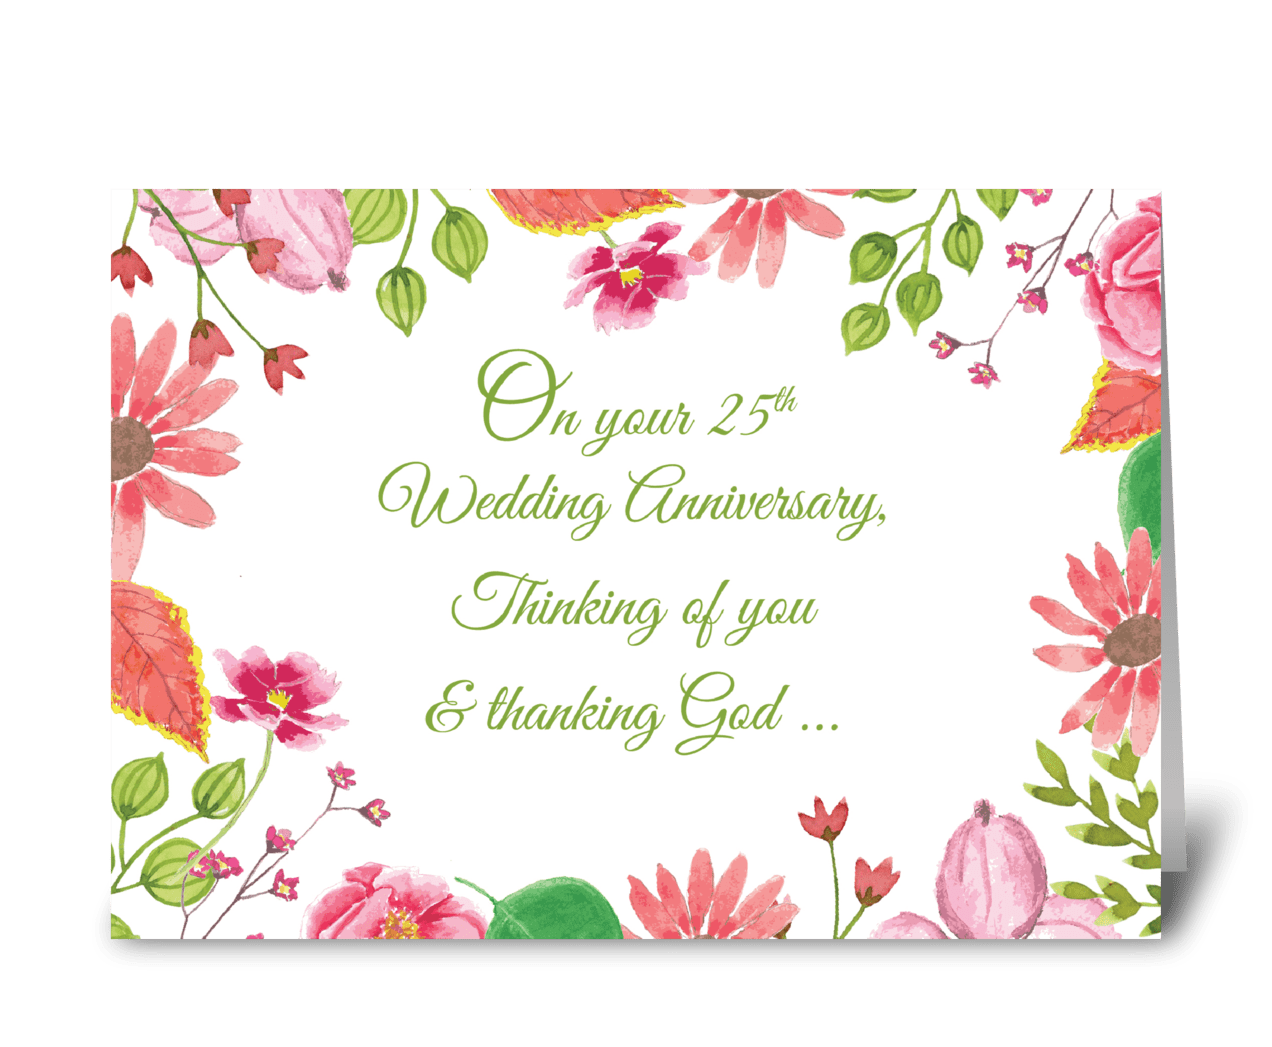 Religious 25th Wedding Anniversary Send This Greeting Card Designed By Sandra Rose Designs Card Gnome